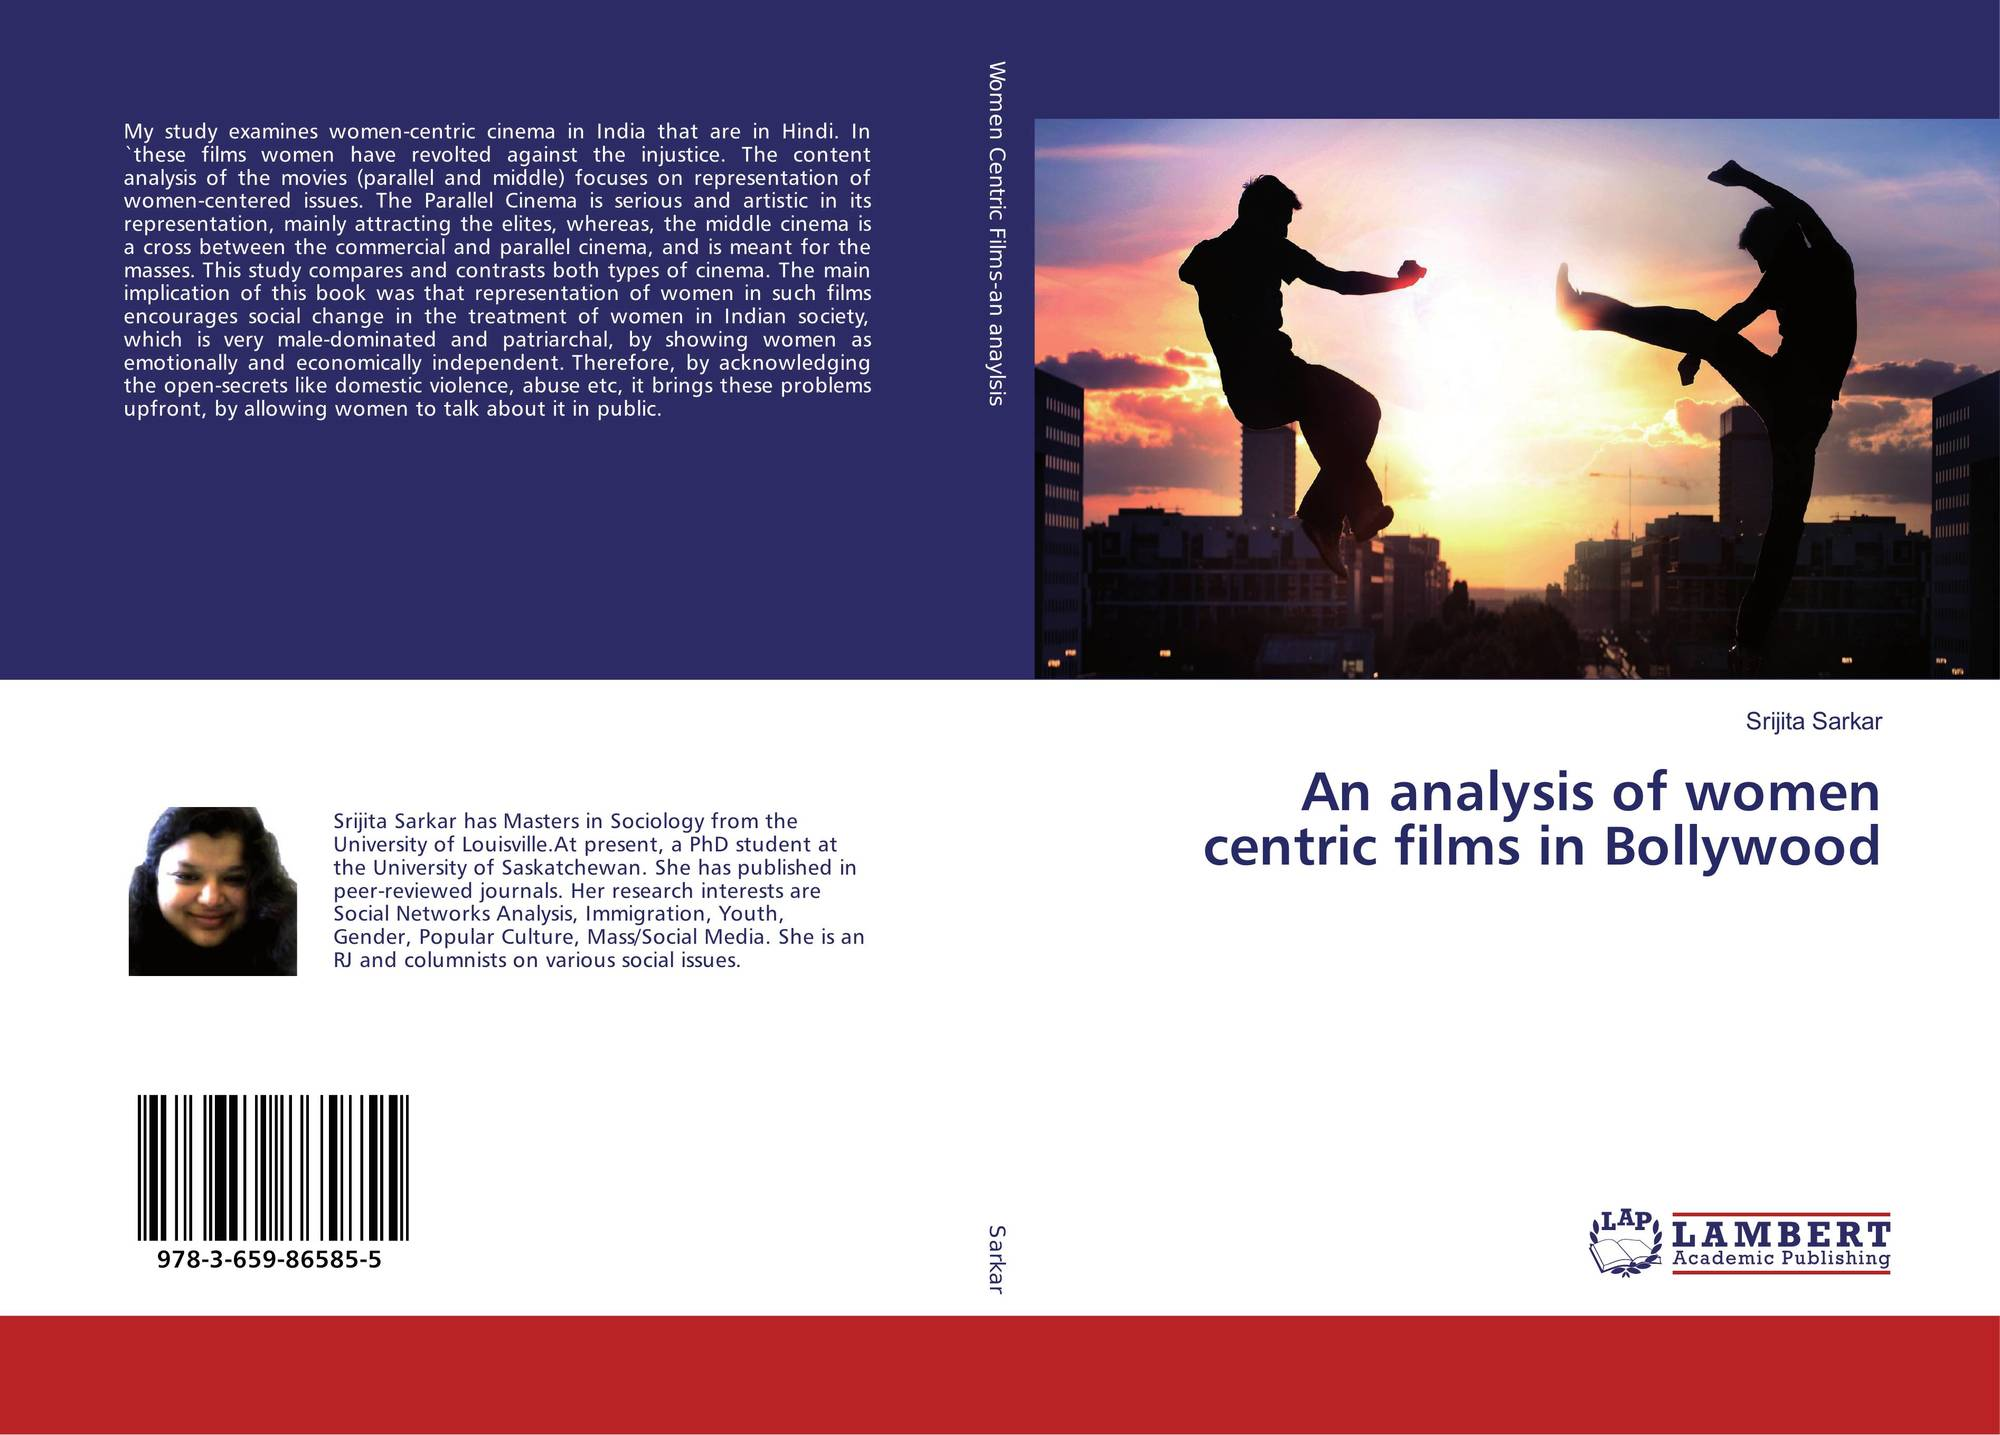 social issues in indian cinema Articles on current social issues in india and contemporary social issues in india,social issue forum,indian social justice issue,social security issue,current social issue,journal of social issue,social issue in india,social work issue,social issue topic,controversial social issue,article on social issuewhat are the current social issues in.